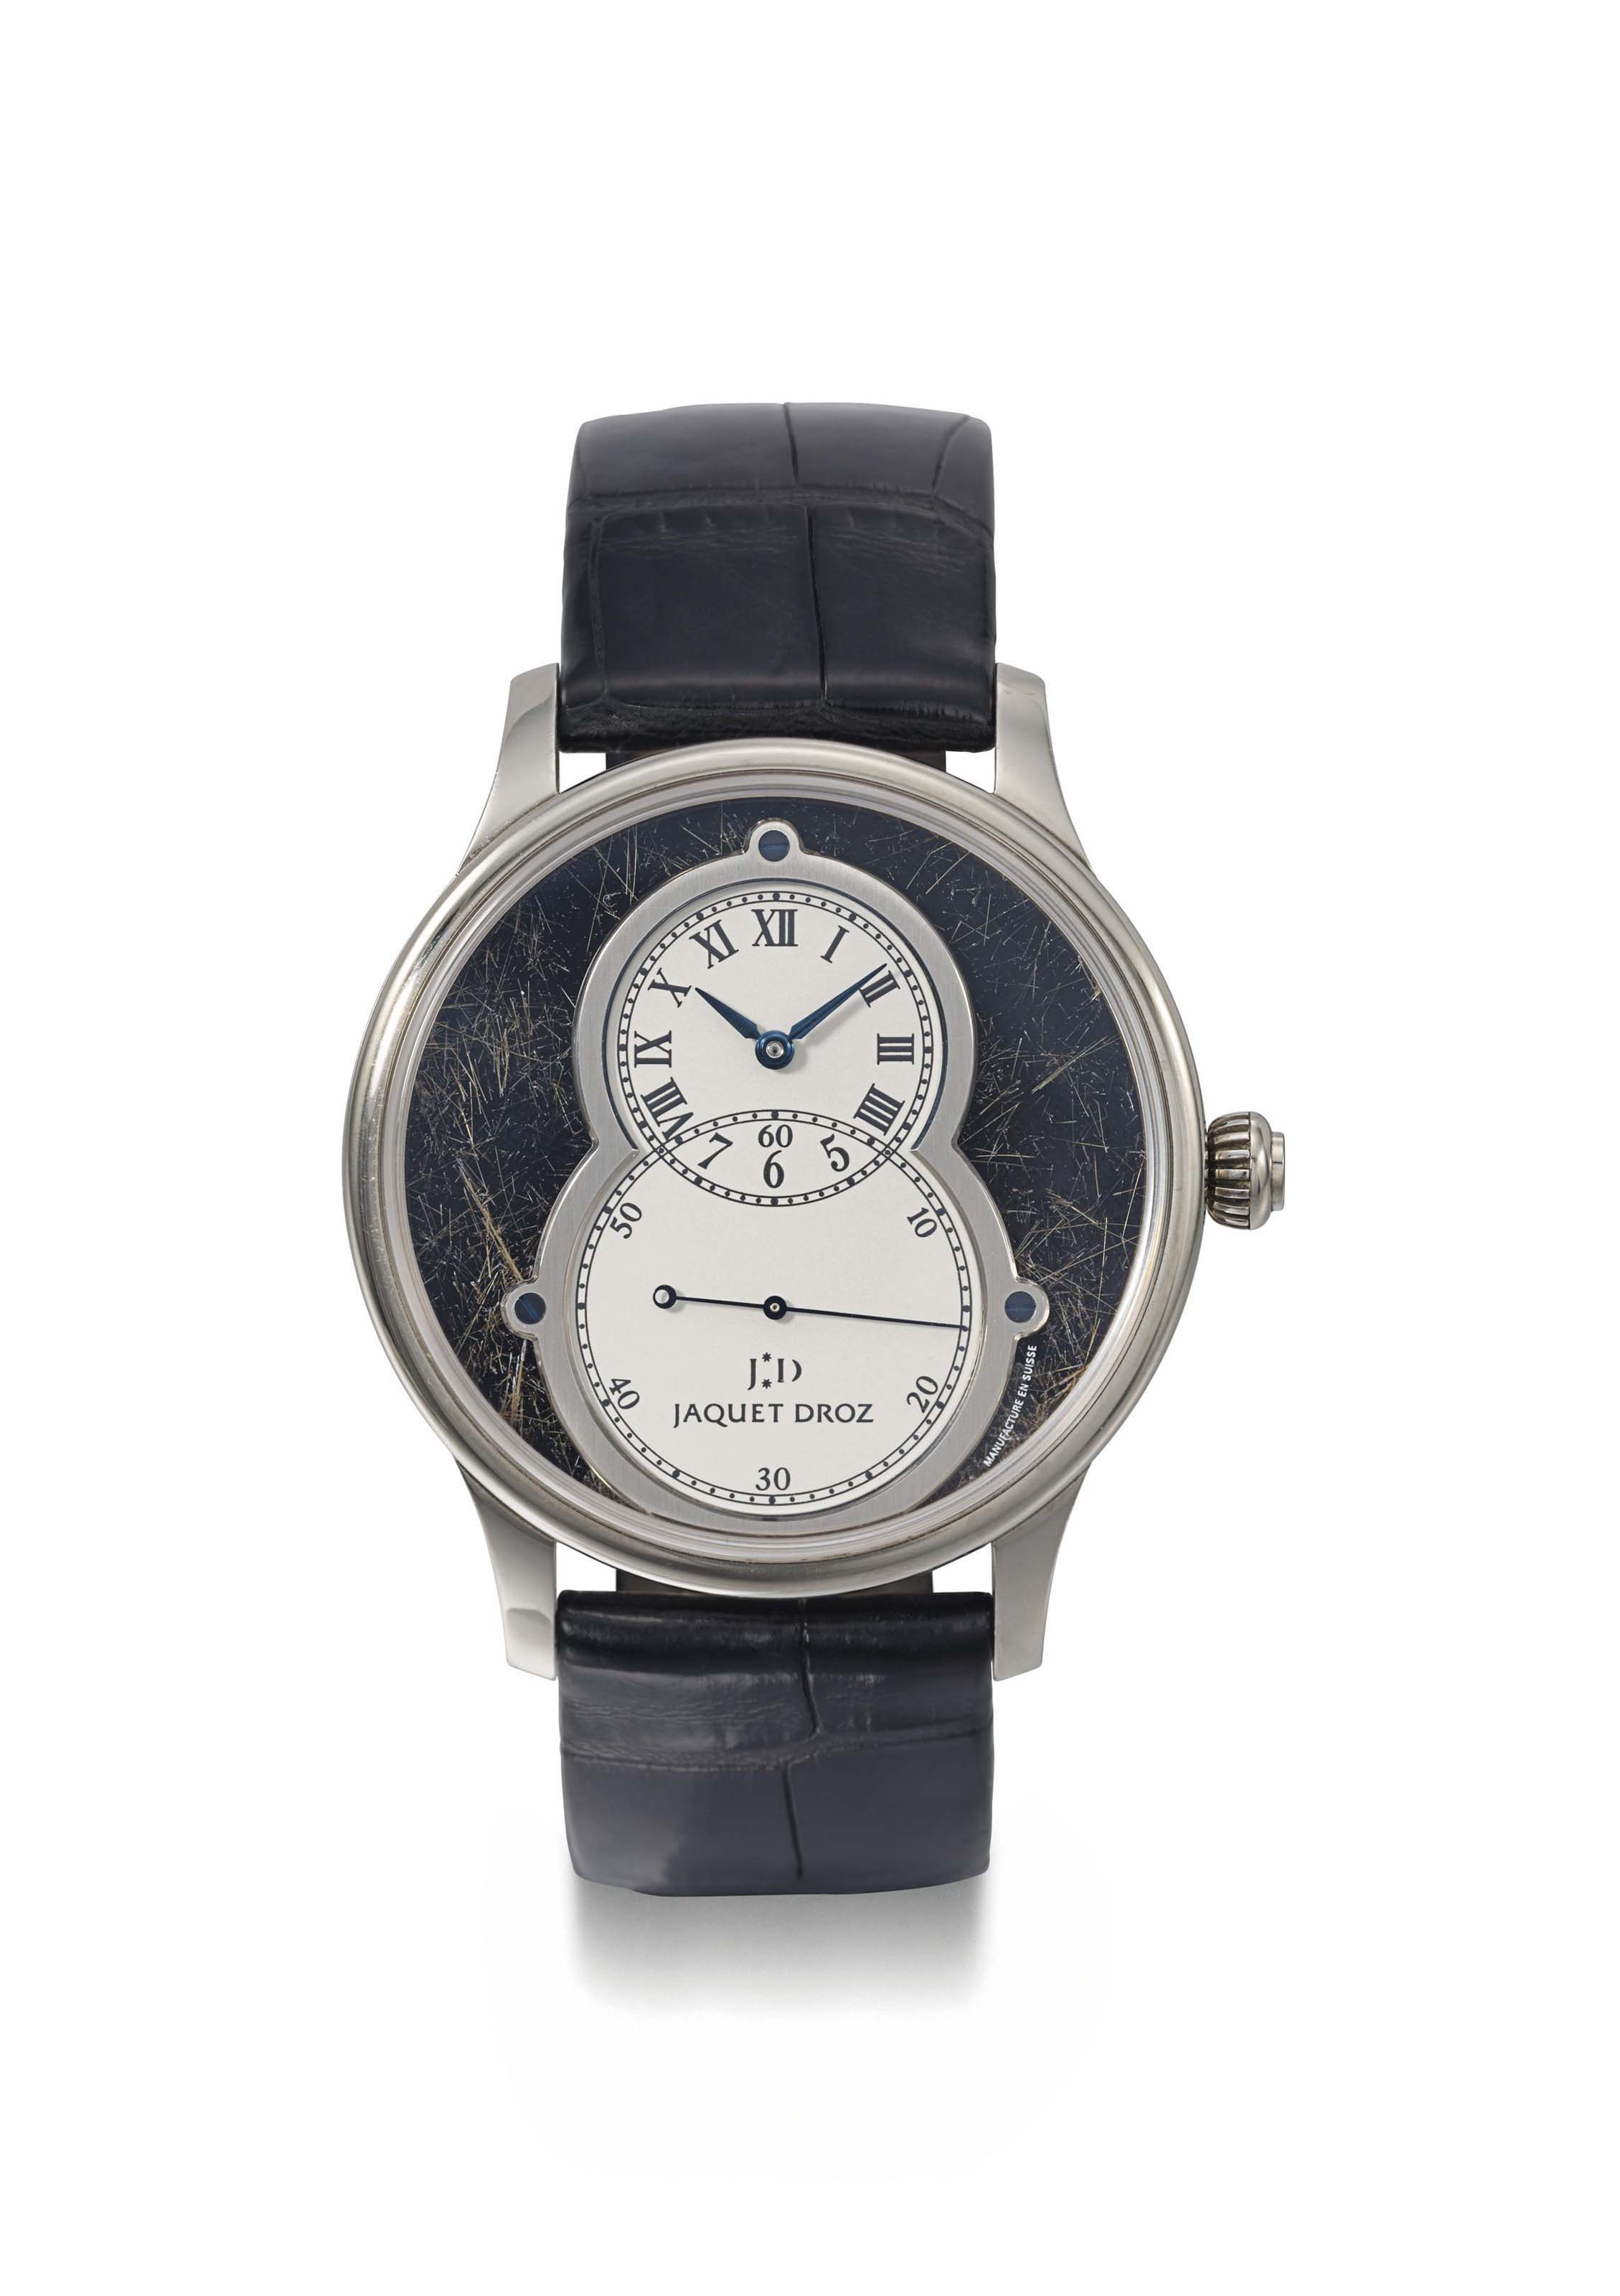 Jaquet Droz. A fine, rare and large 18K white gold limited edition oversized automatic wristwatch with off-centered time display, black textured dial, original Certificate and box